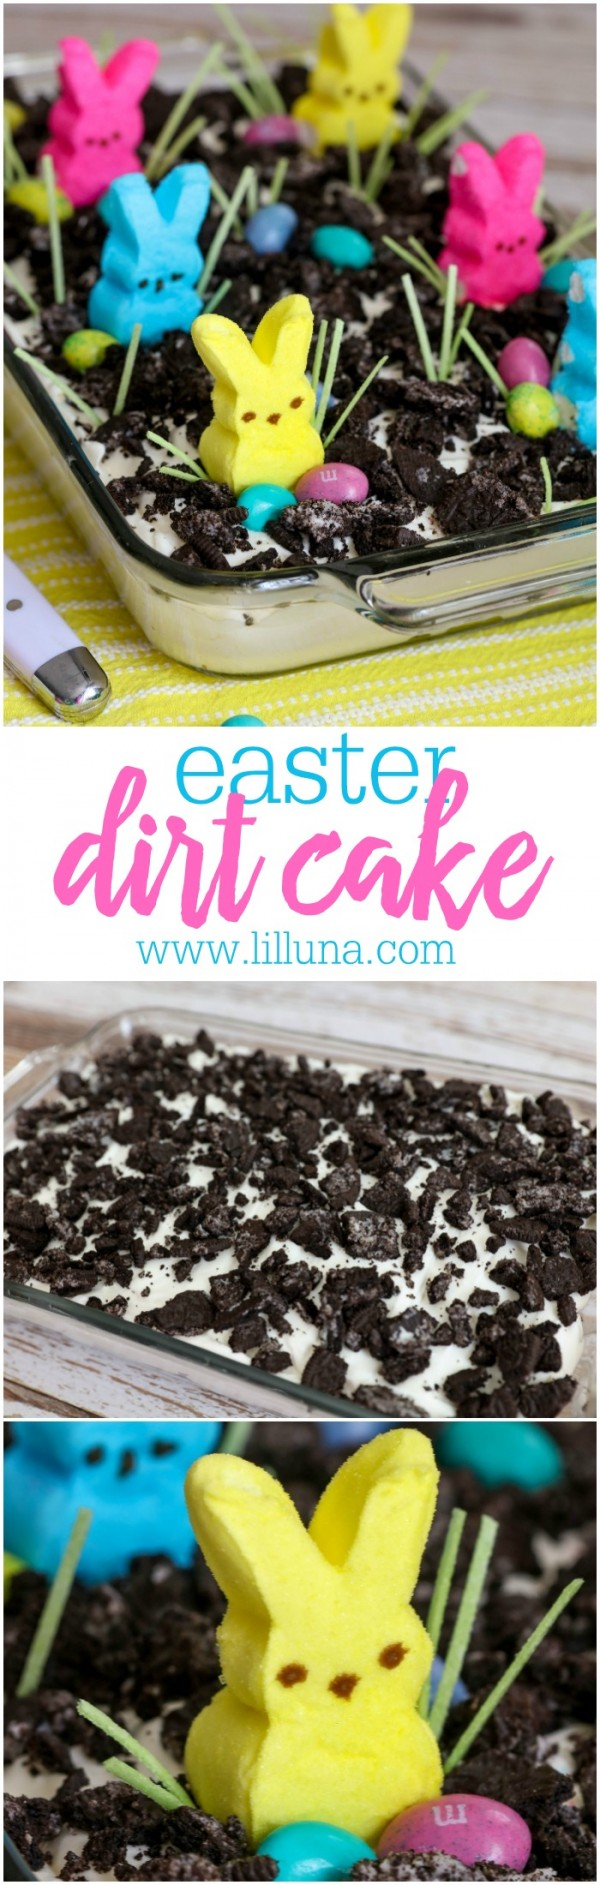 Get the recipe Easter Dirt Cake @recipes_to_go